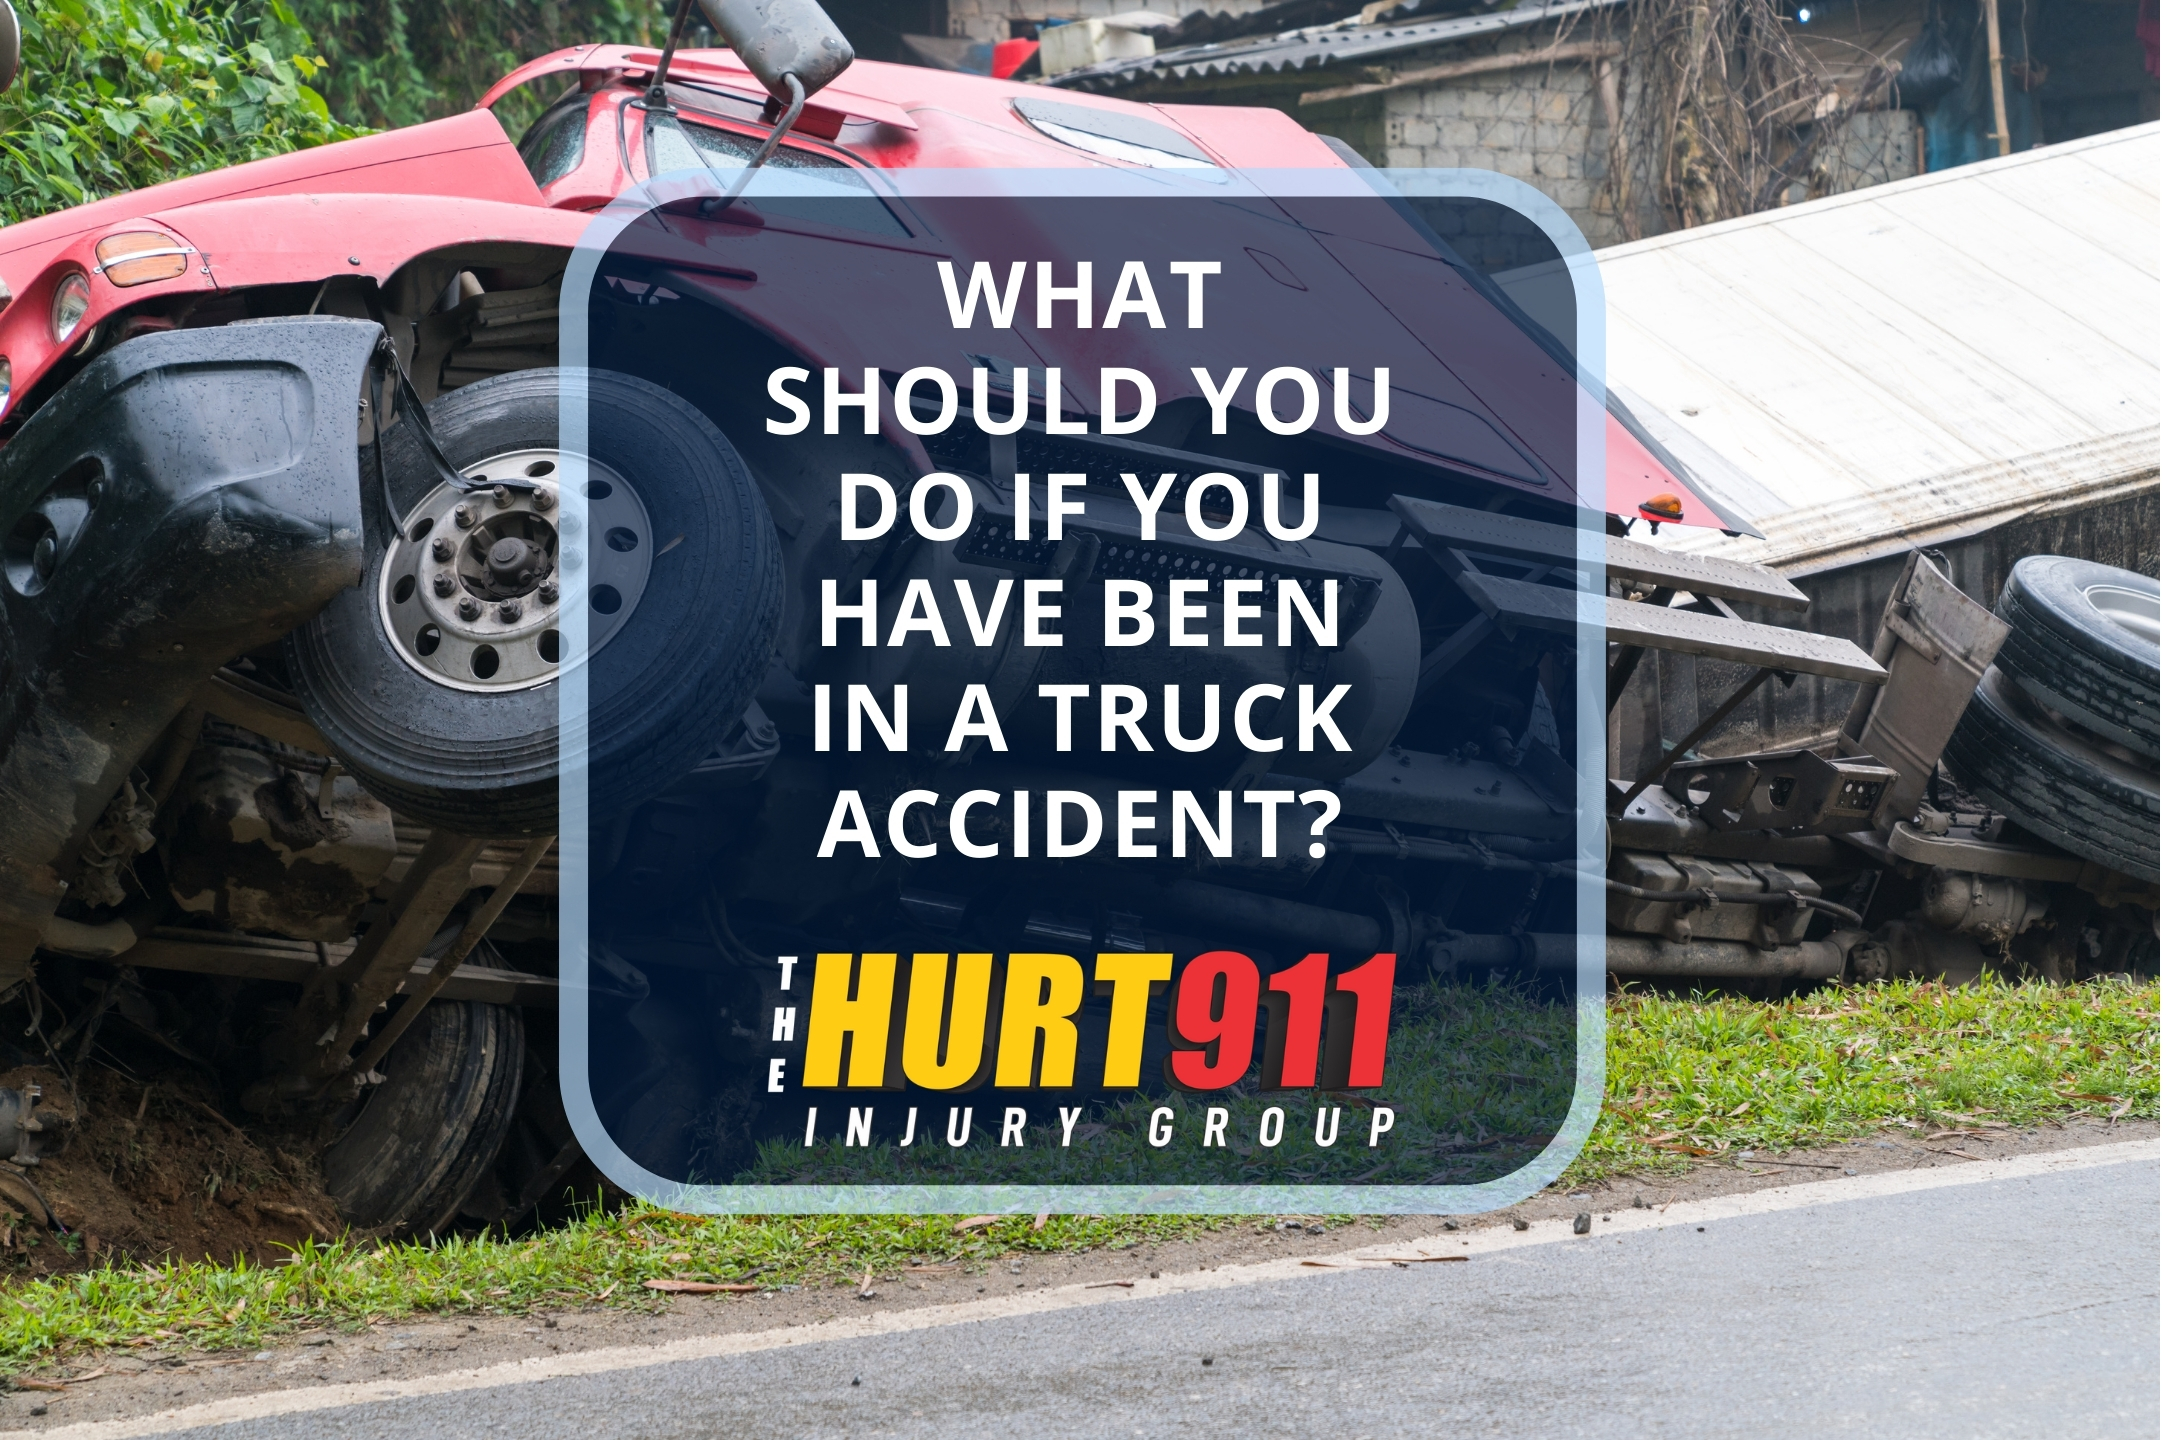 What Should You Do If You Have Been in a Truck Accident?